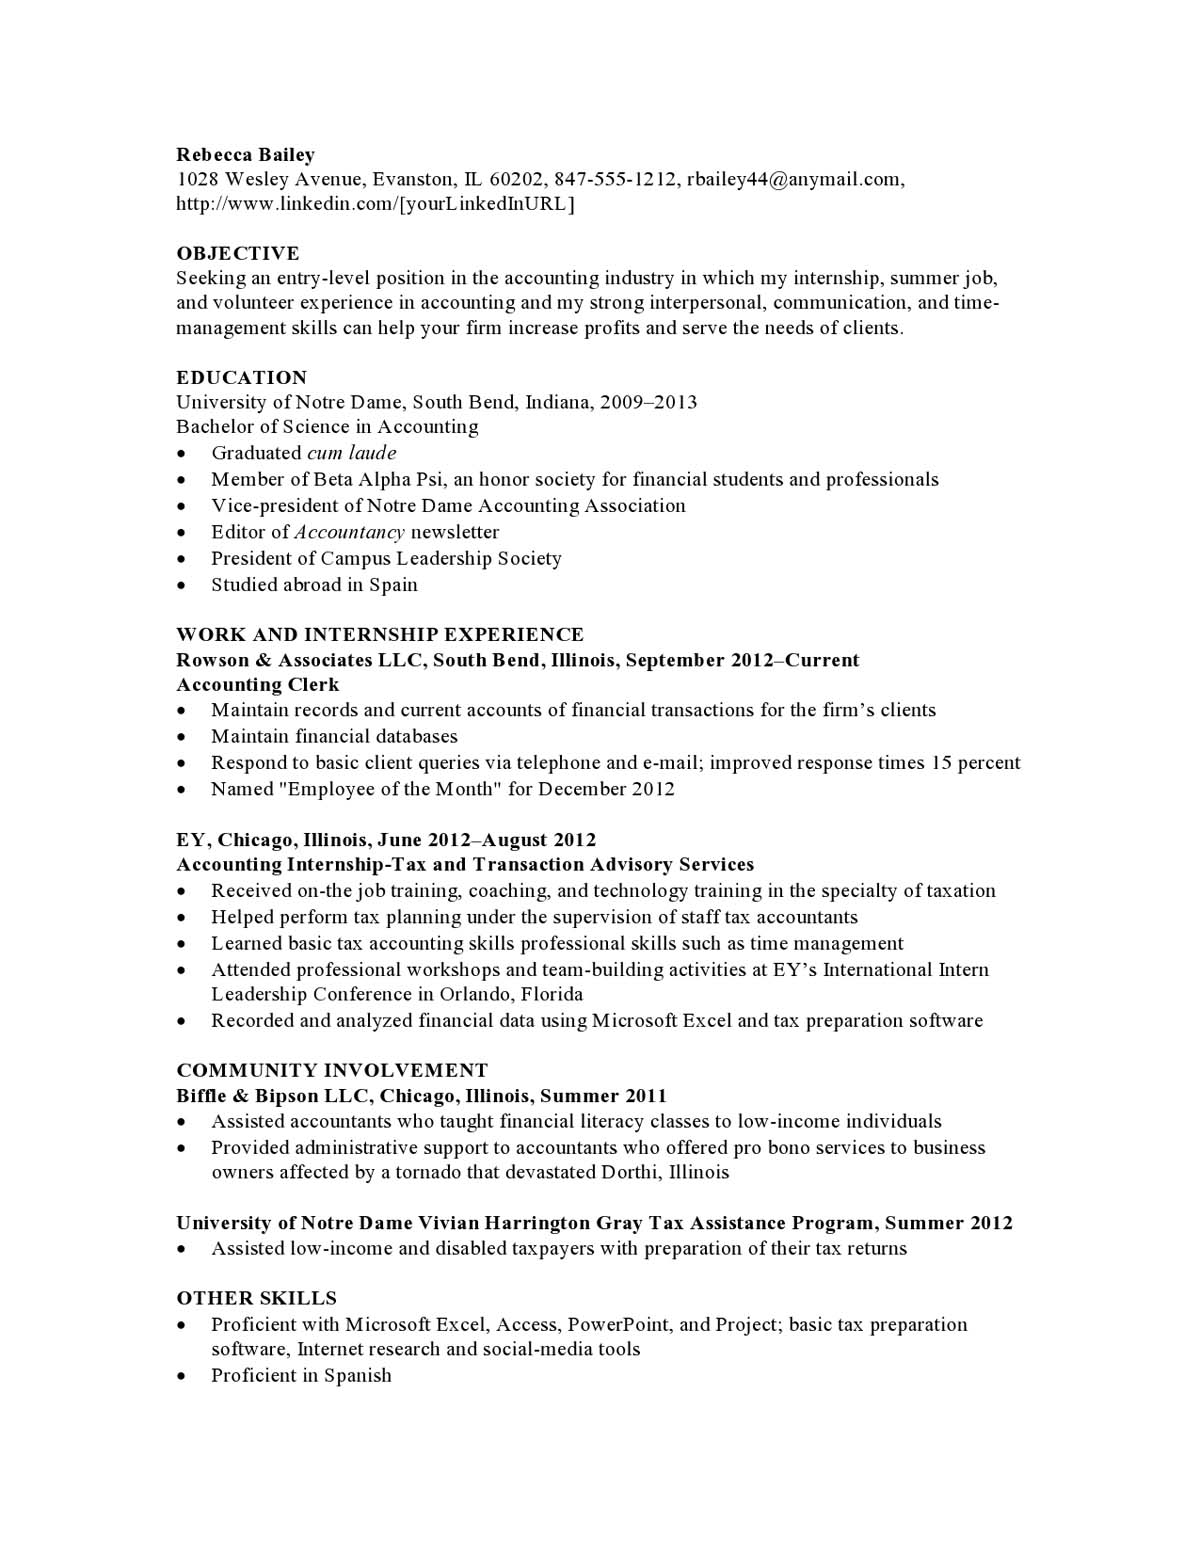 resume samples templates examples vault it professional crescoact19 internship sample for Resume It Professional Resume Samples